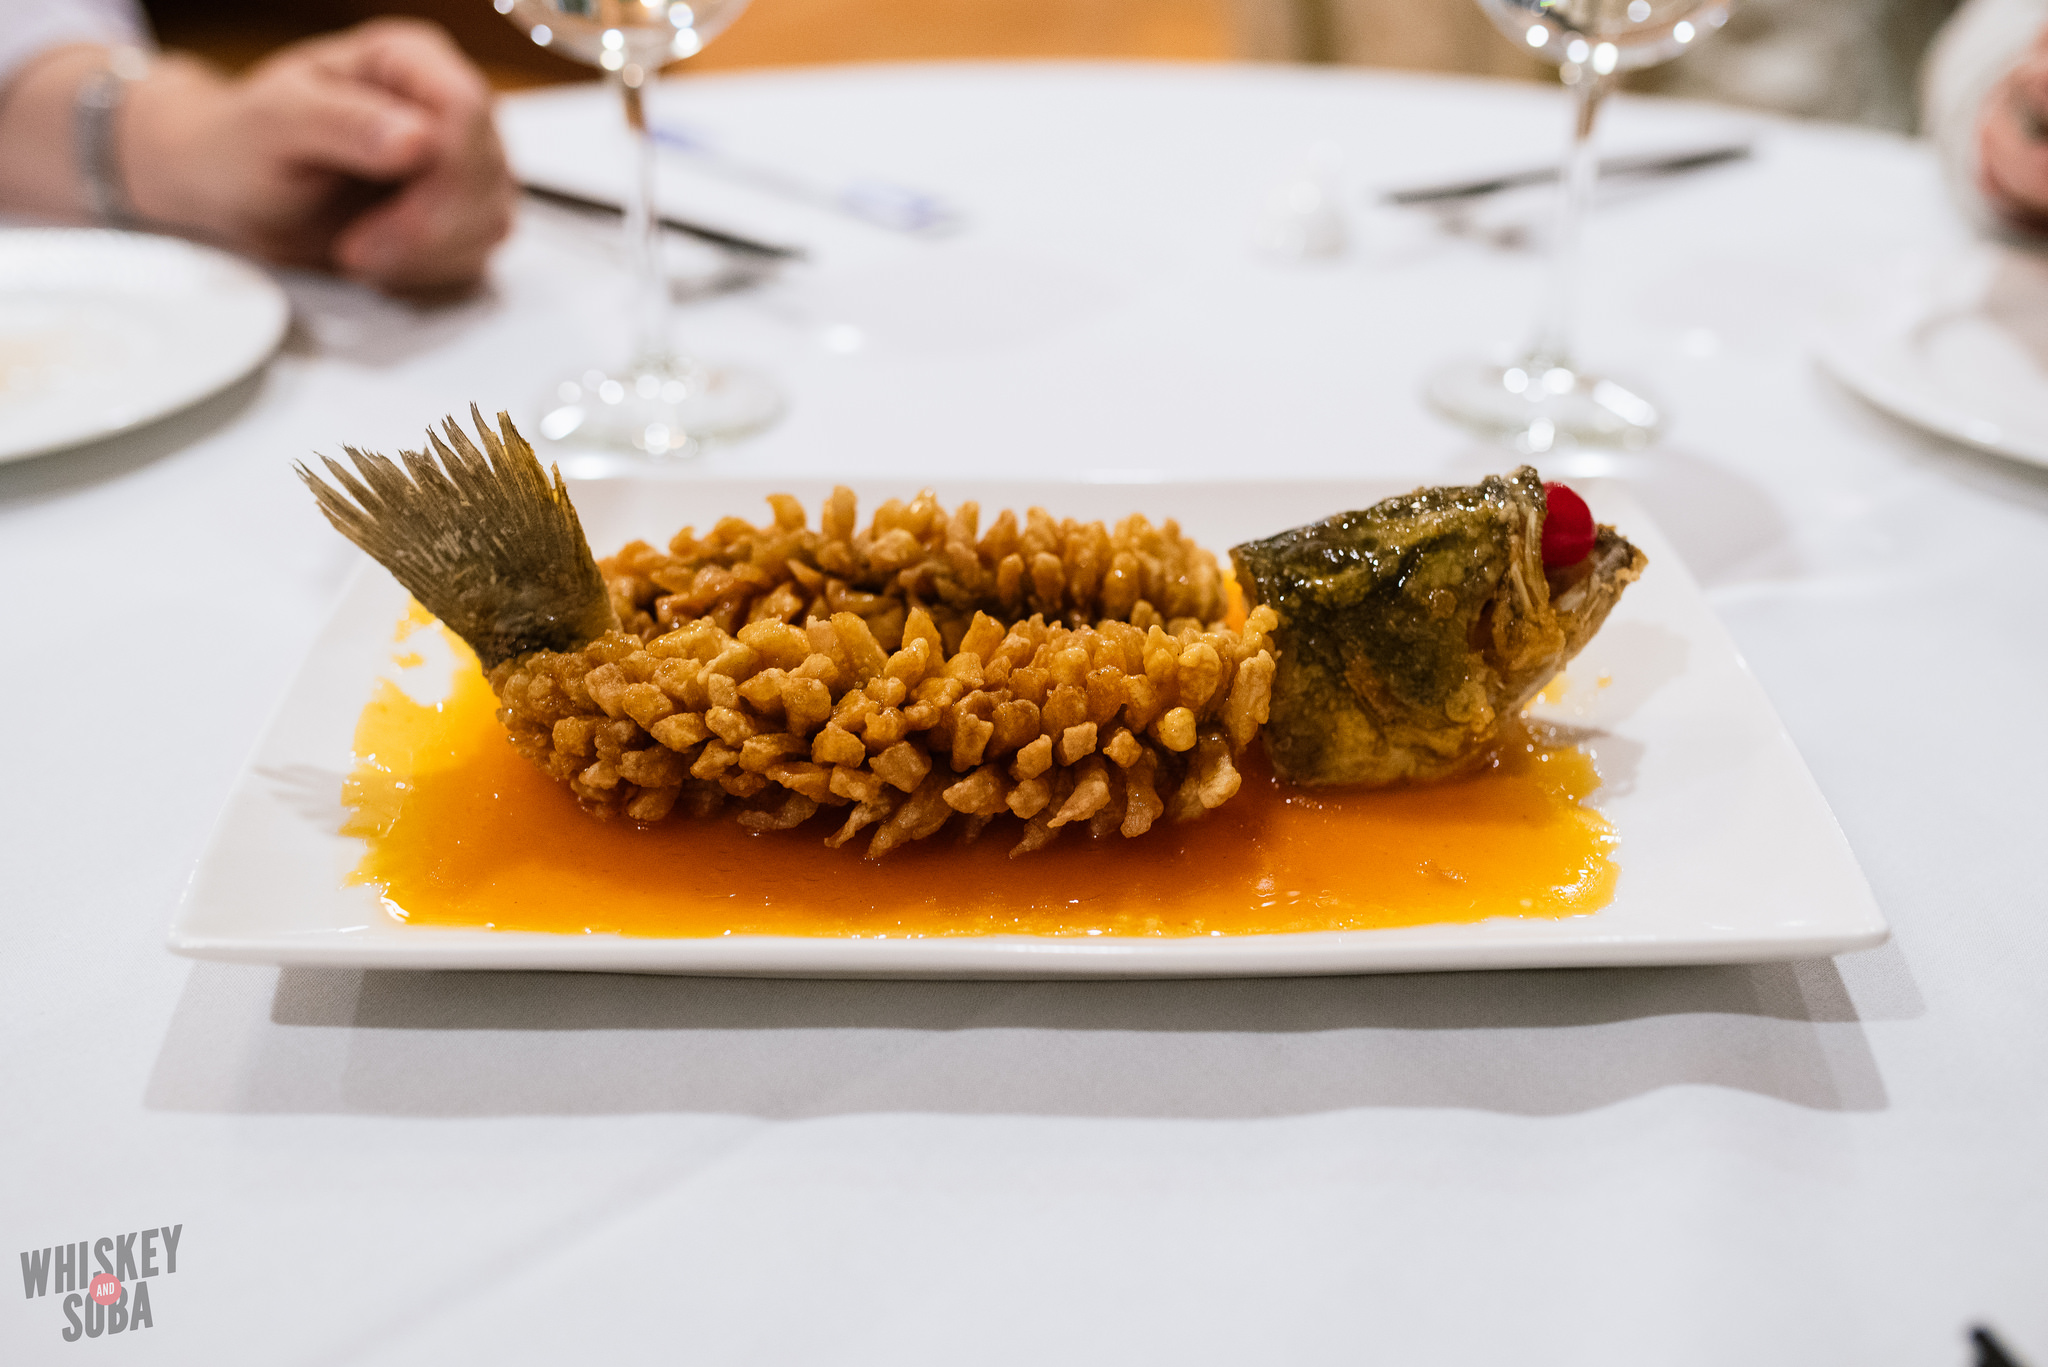 private kitchen fried fish